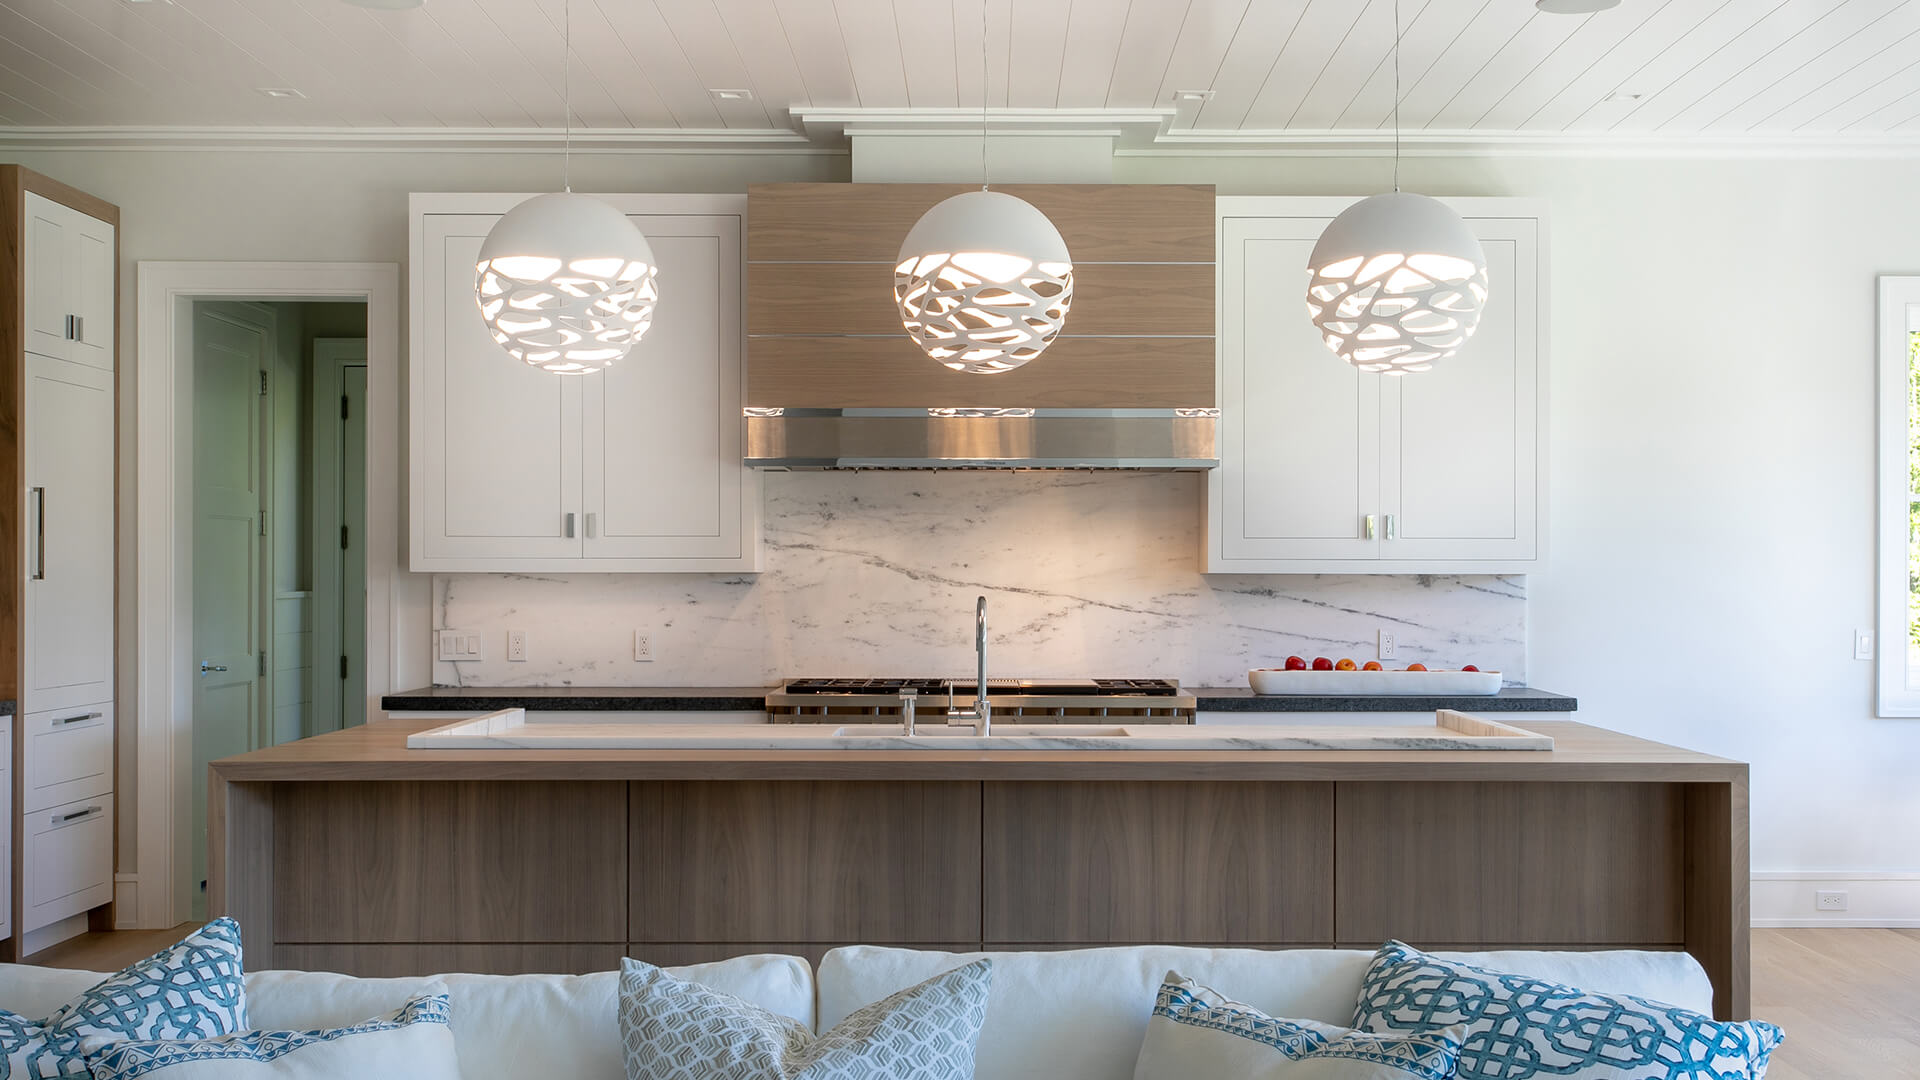 Front facing BK signature stained walnut drawer fronts and accents, a custom designed polished nickel /walnut rangehood and a stunning walnut waterfall countertop